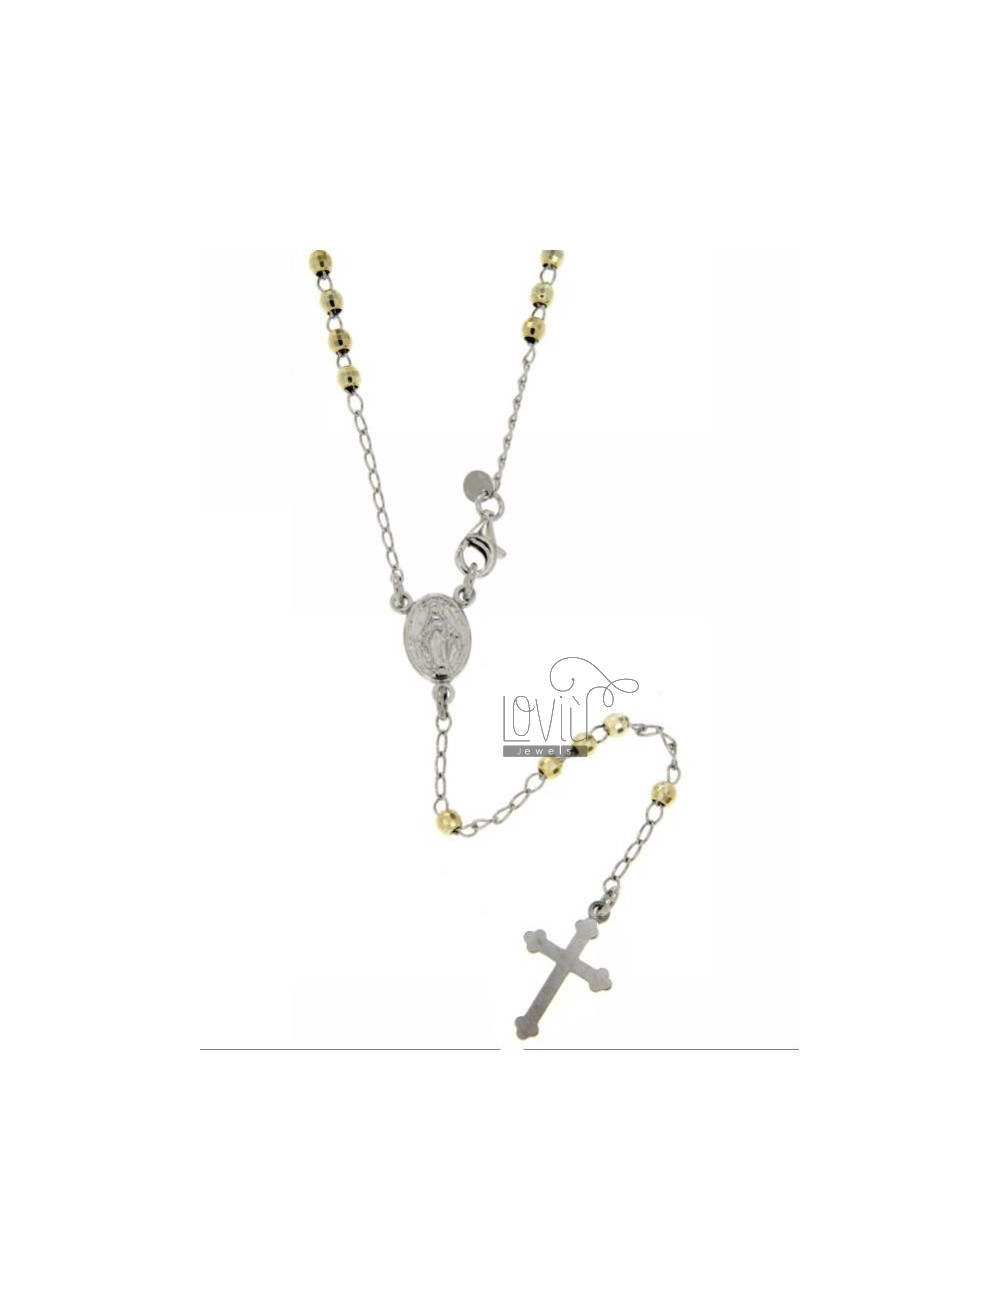 ROSARY NECKLACE WITH BALL facetted rhodium.plated 3 MM GOLD PLATED SILVER TIT GIALLOCM 50 925